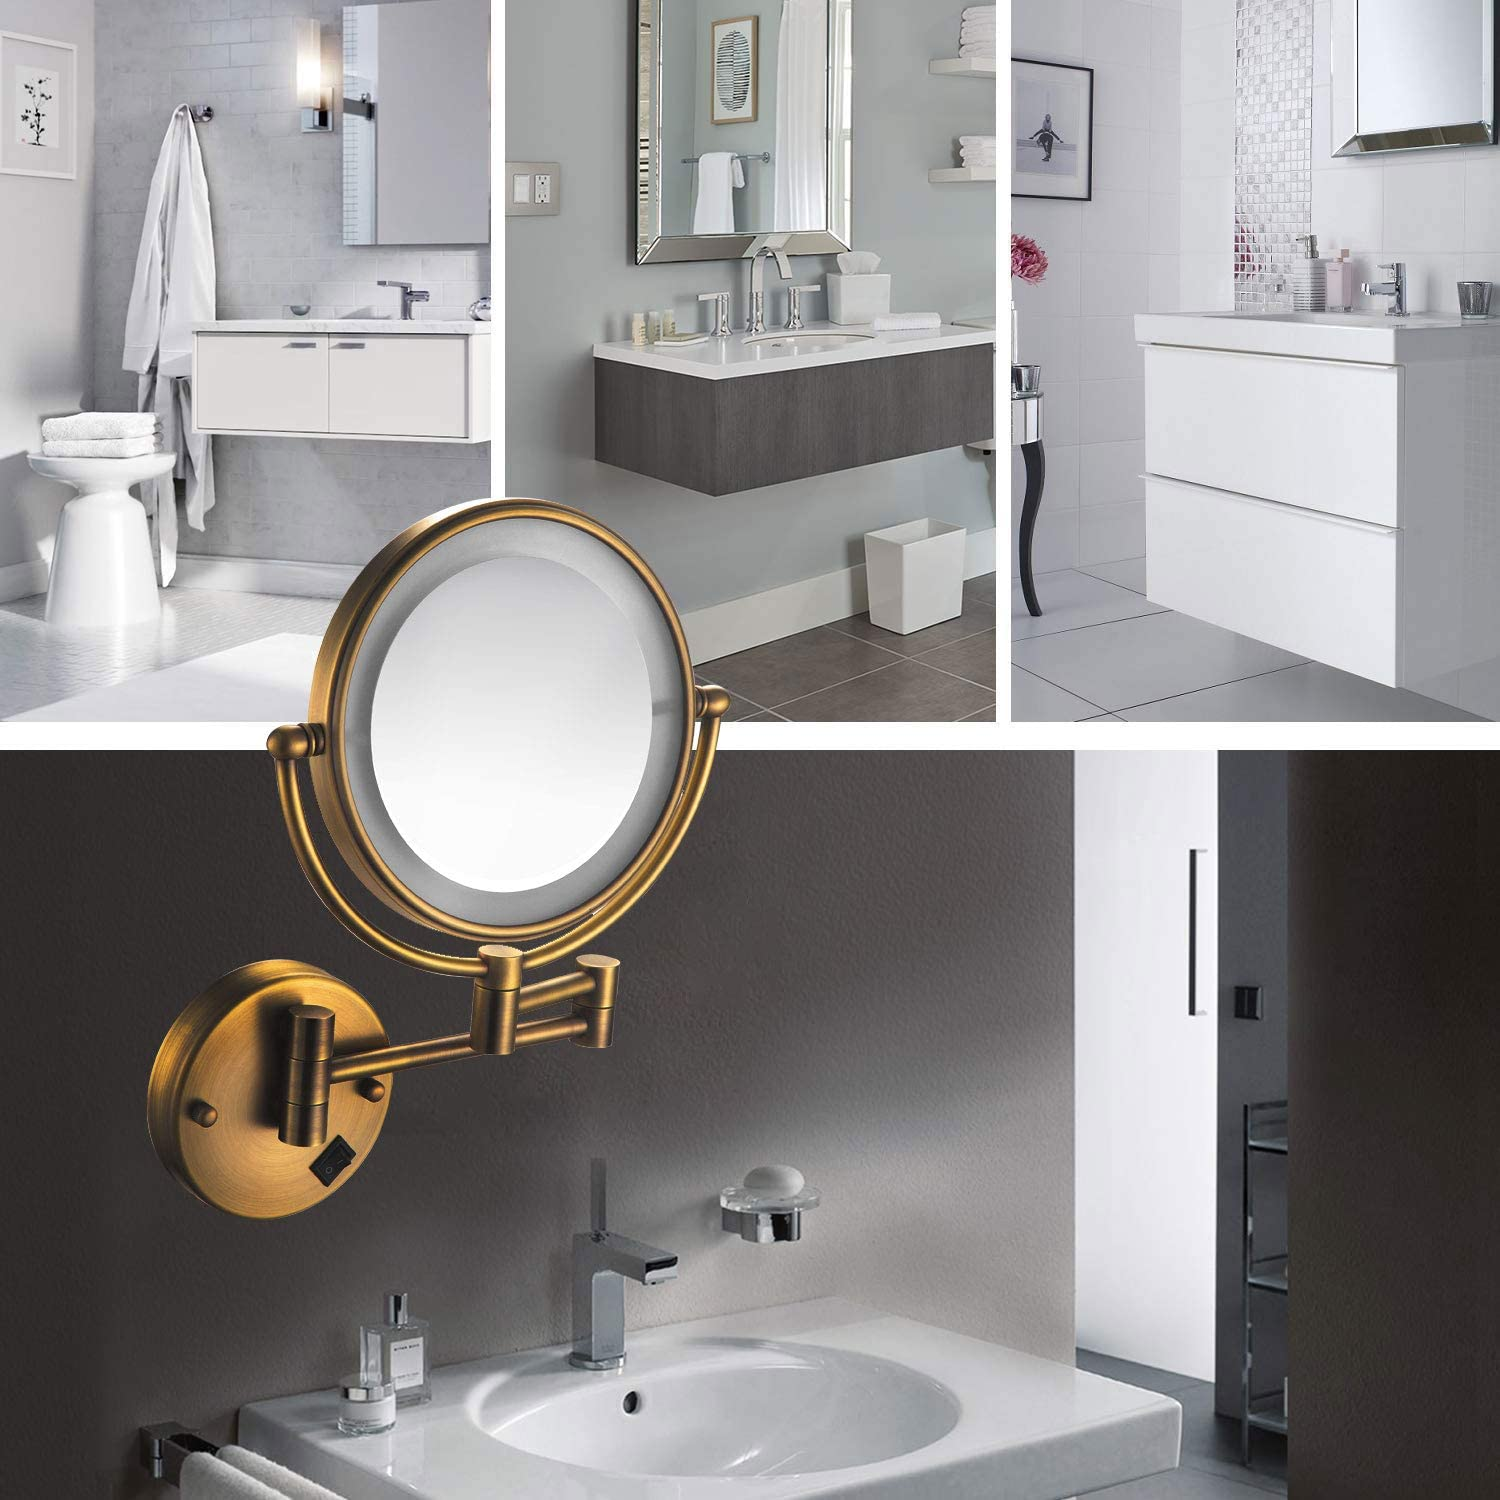 with Matte Black Finish 360/° Swivel 11 Extension Having in Bedroom Or Bathroom Makeup Mirrors Wall Mount 8 Inch Double-Sided 5X Magnifying LED Lighted Mirror